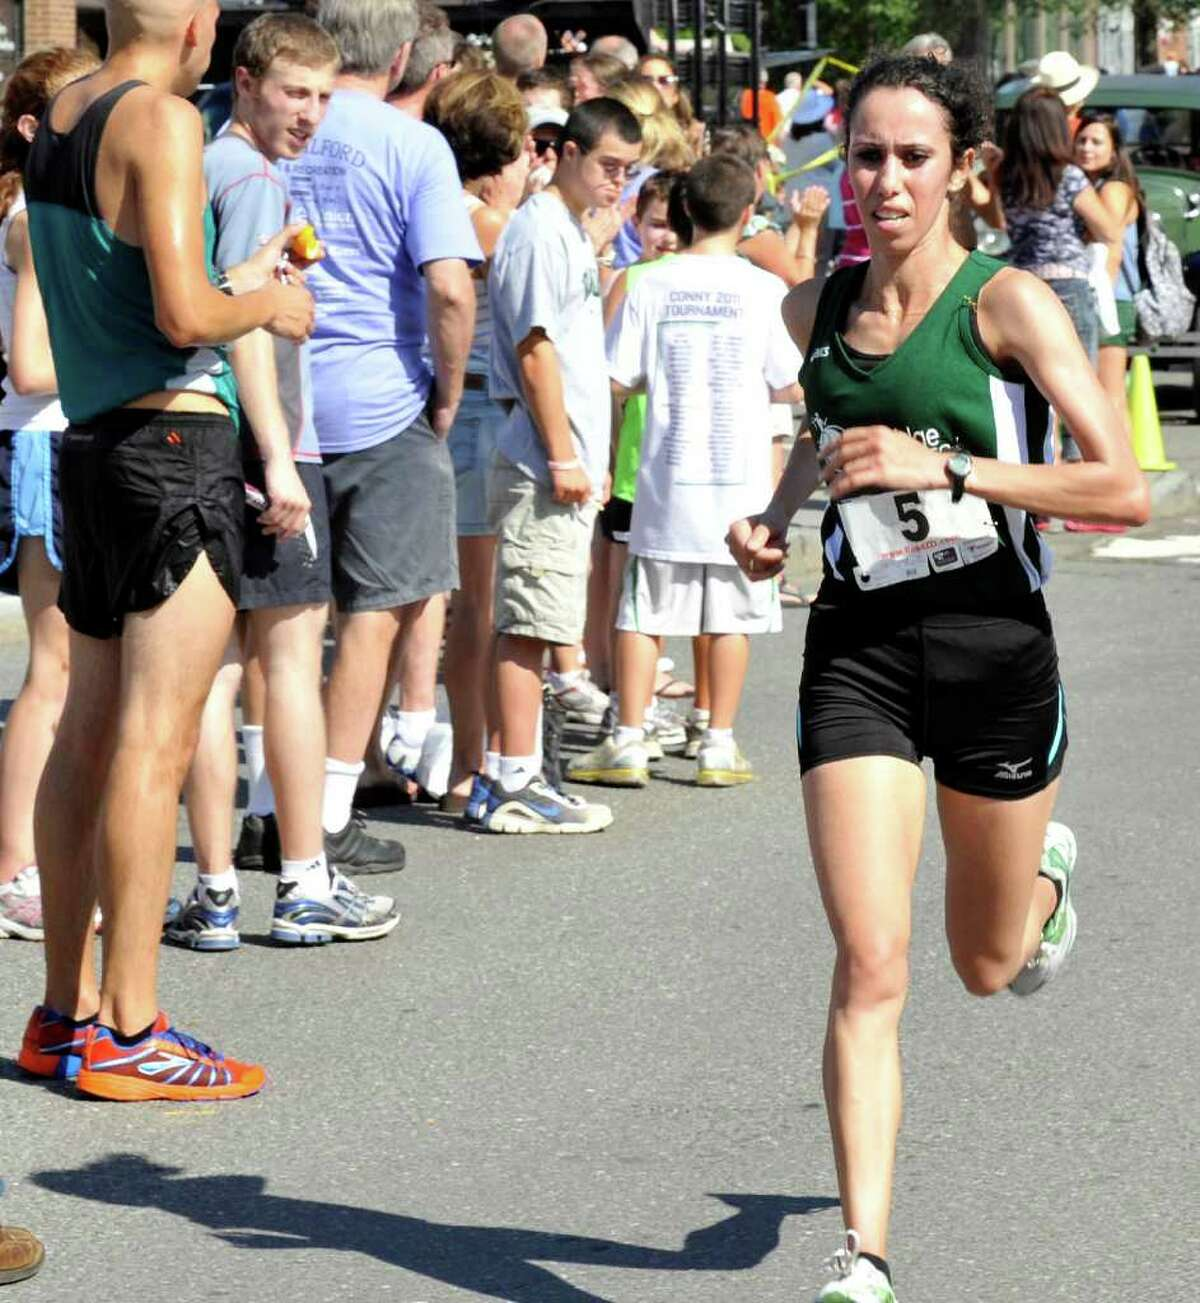 Malika Mejdoub, of New York City, wins the women's division of The New Milford 8-mile road race during Village Fair Days in New Milford, Saturday, July 30, 2011.